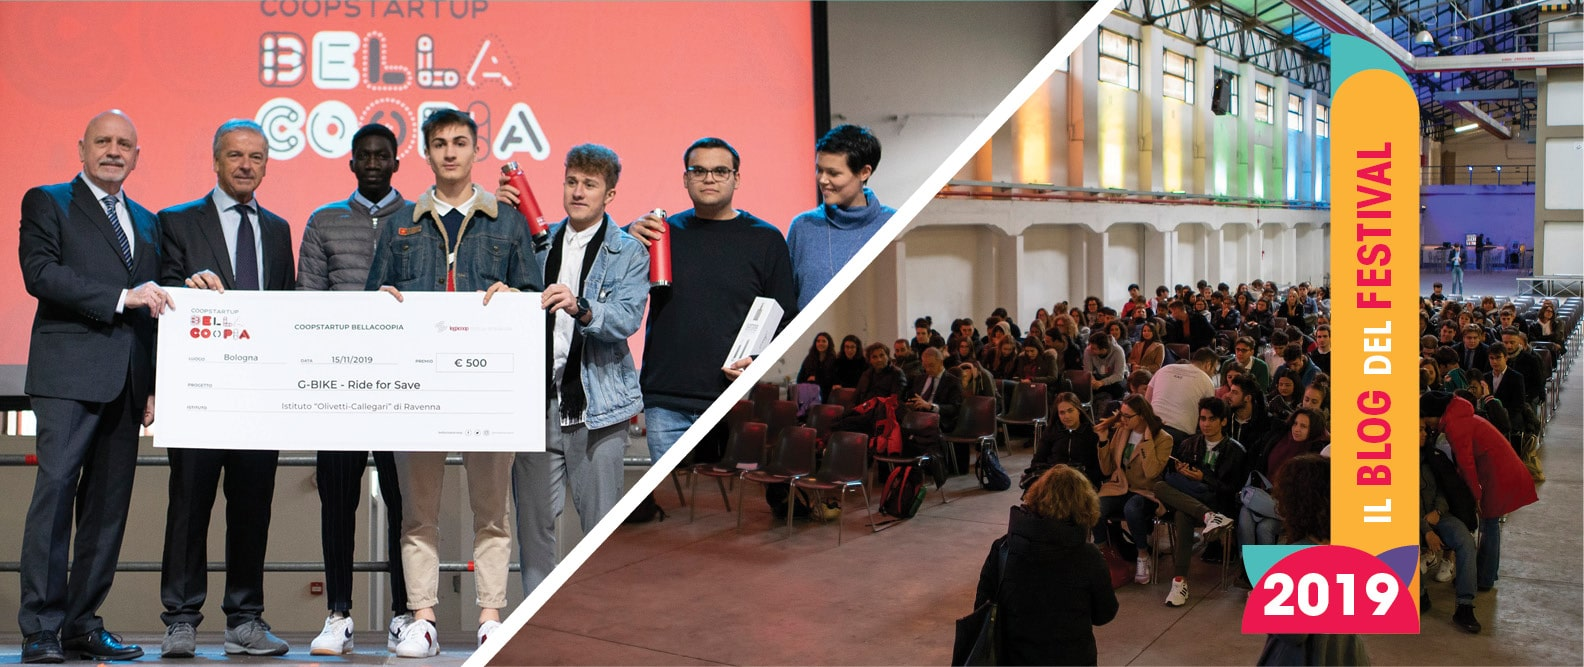 Le 7 startup ideate da under 18 più innovative dell'Emilia-Romagna